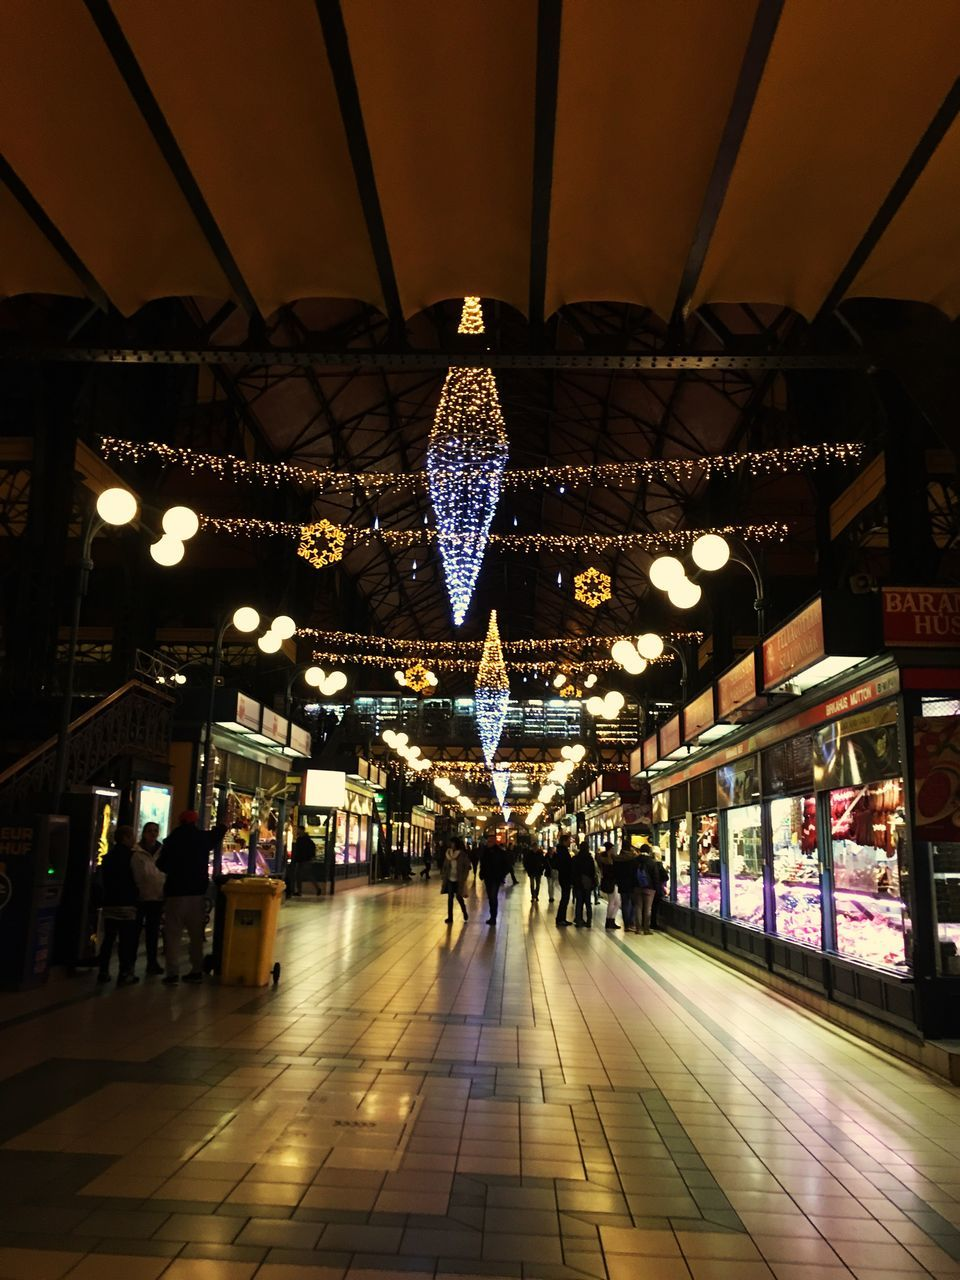 illuminated, lighting equipment, ceiling, indoors, real people, retail, large group of people, architecture, market, store, built structure, men, hanging, lifestyles, day, city, people